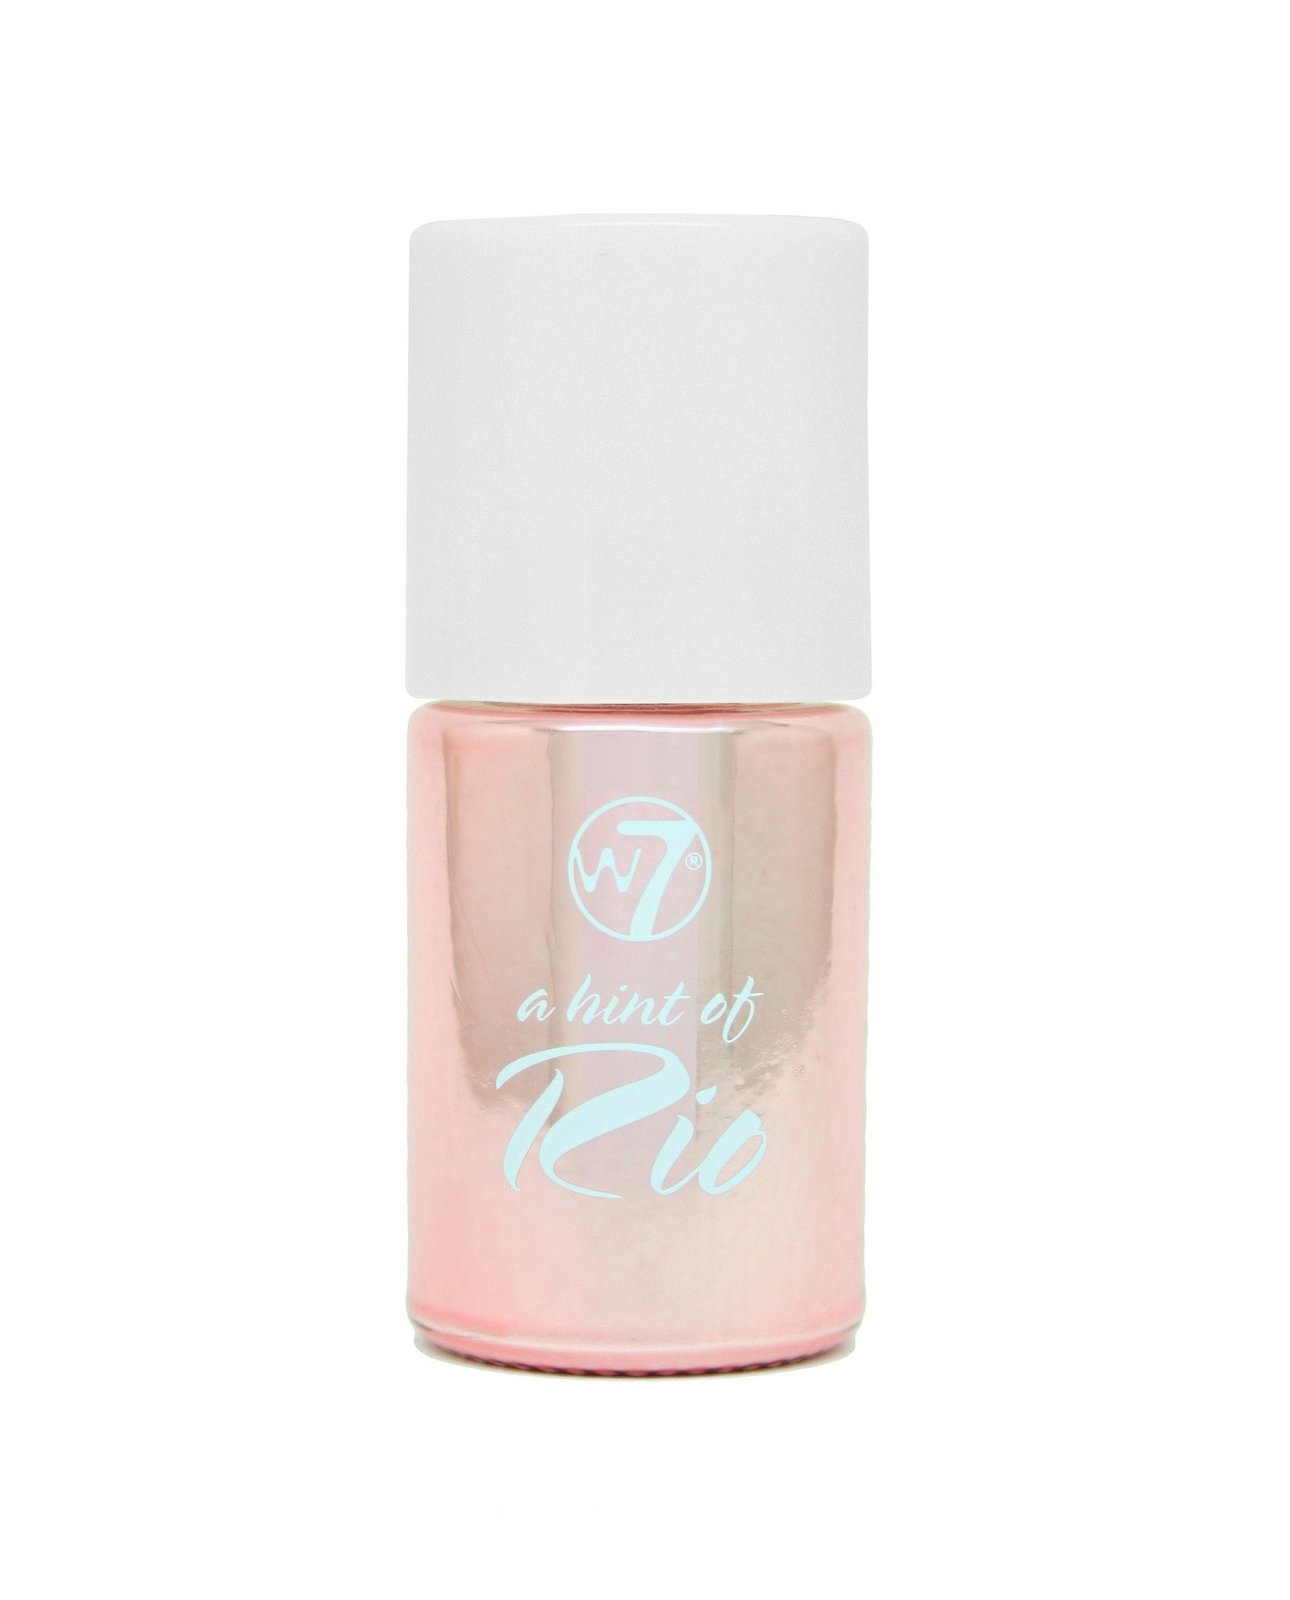 W7 Lip Stain Hint of Paradise (A Hint of Rio) image